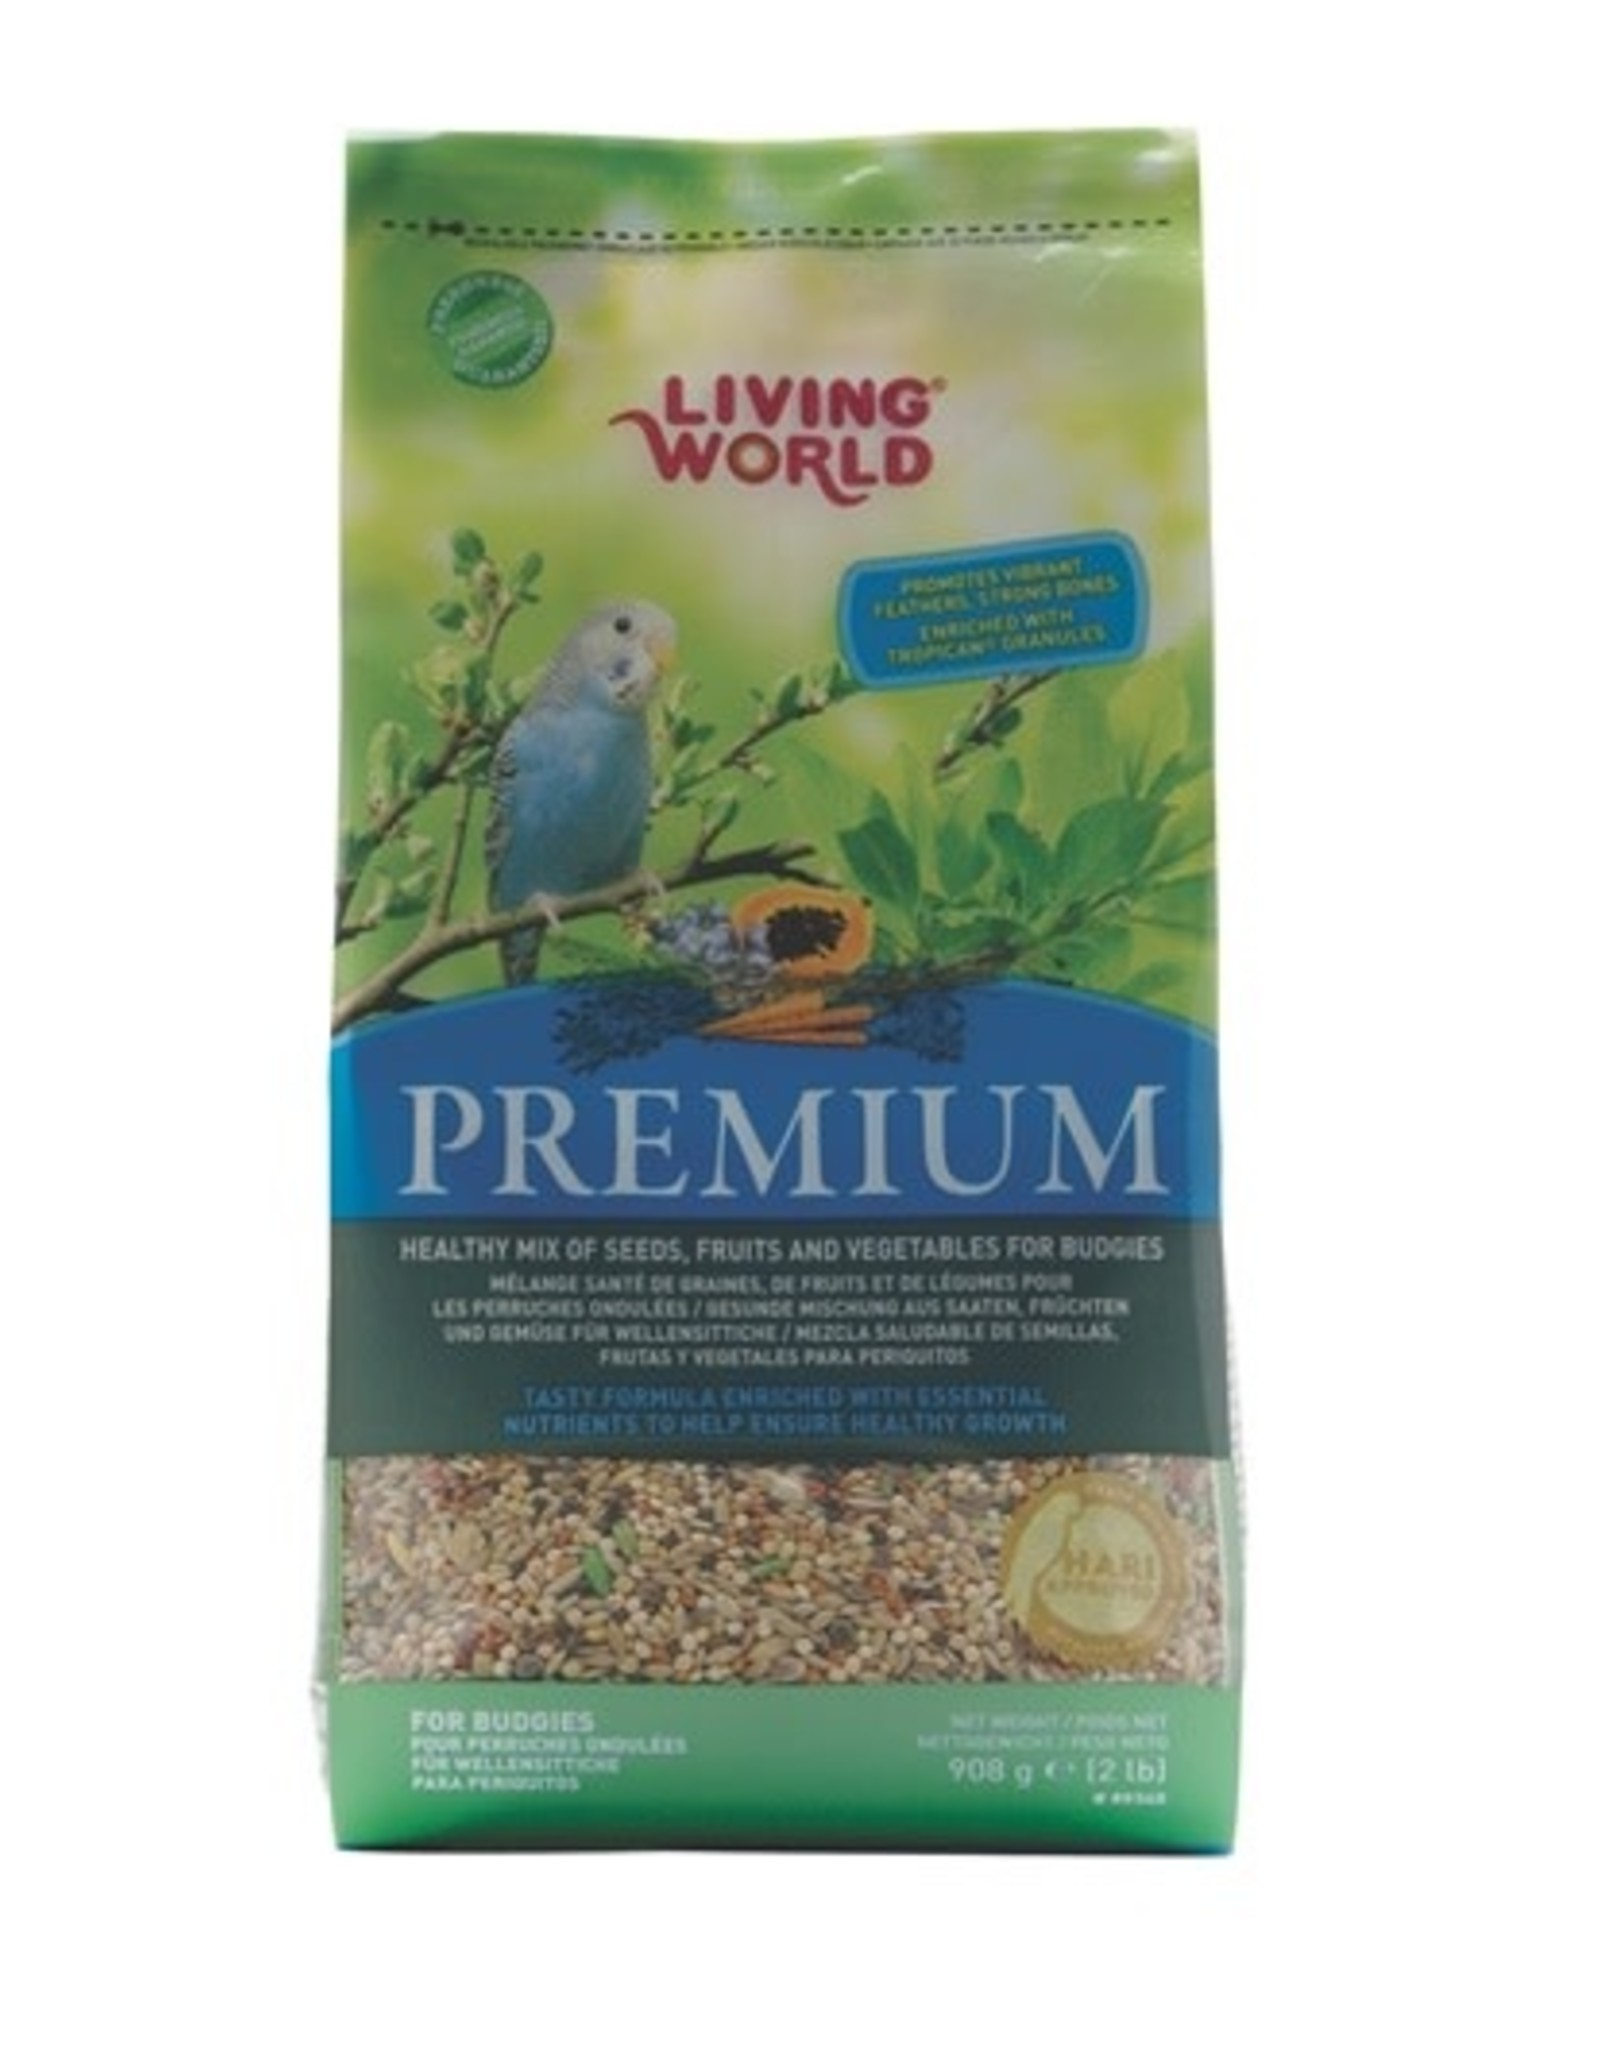 Living World Living World Premium Mix For Budgies - 908 g (2 lb)